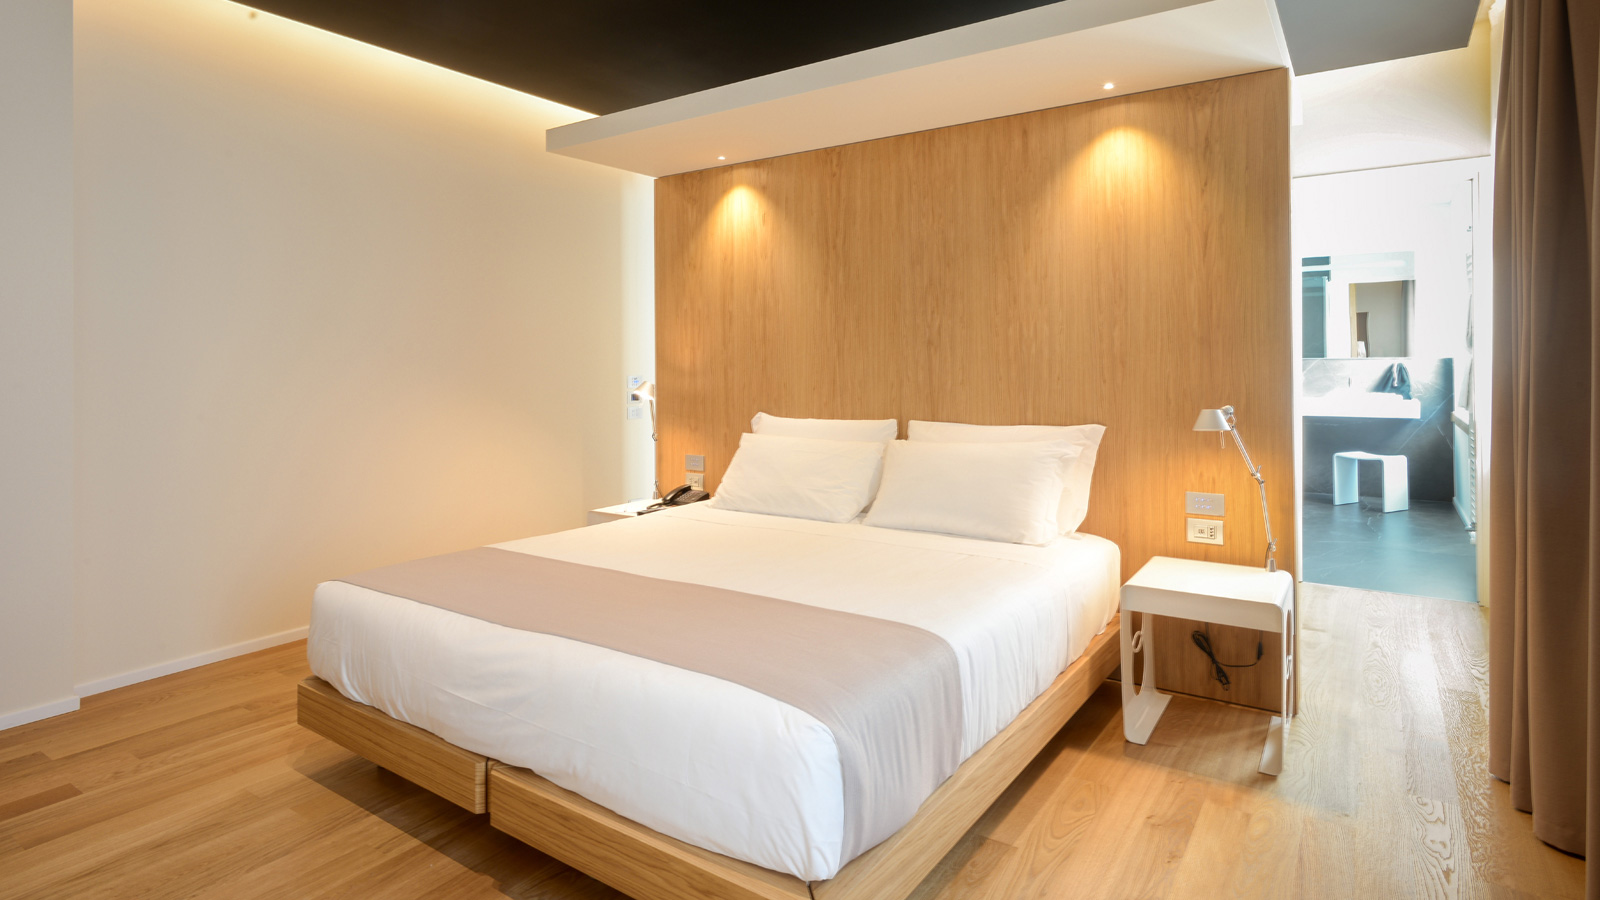 The PORCELANOSA Grupo decks out the Best Western Plus Bologna Hotel in Venice